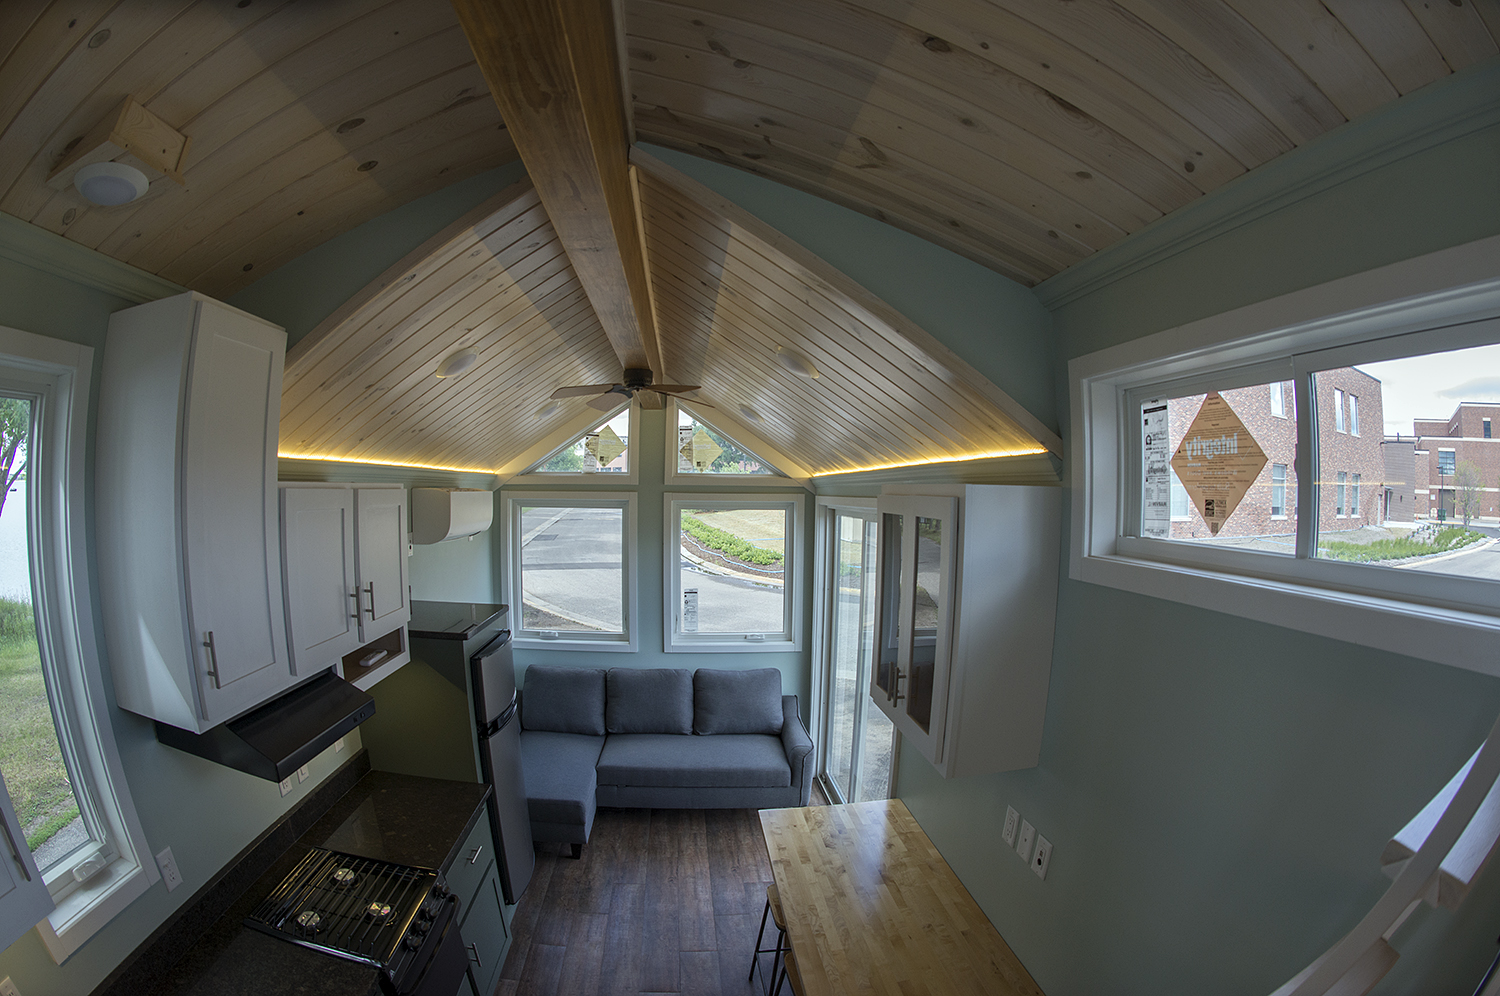 Bemidji State University tiny house Ceiling and wall pine 1 x 6, tongue and groove planks with white-wash stain & polyurethane finish